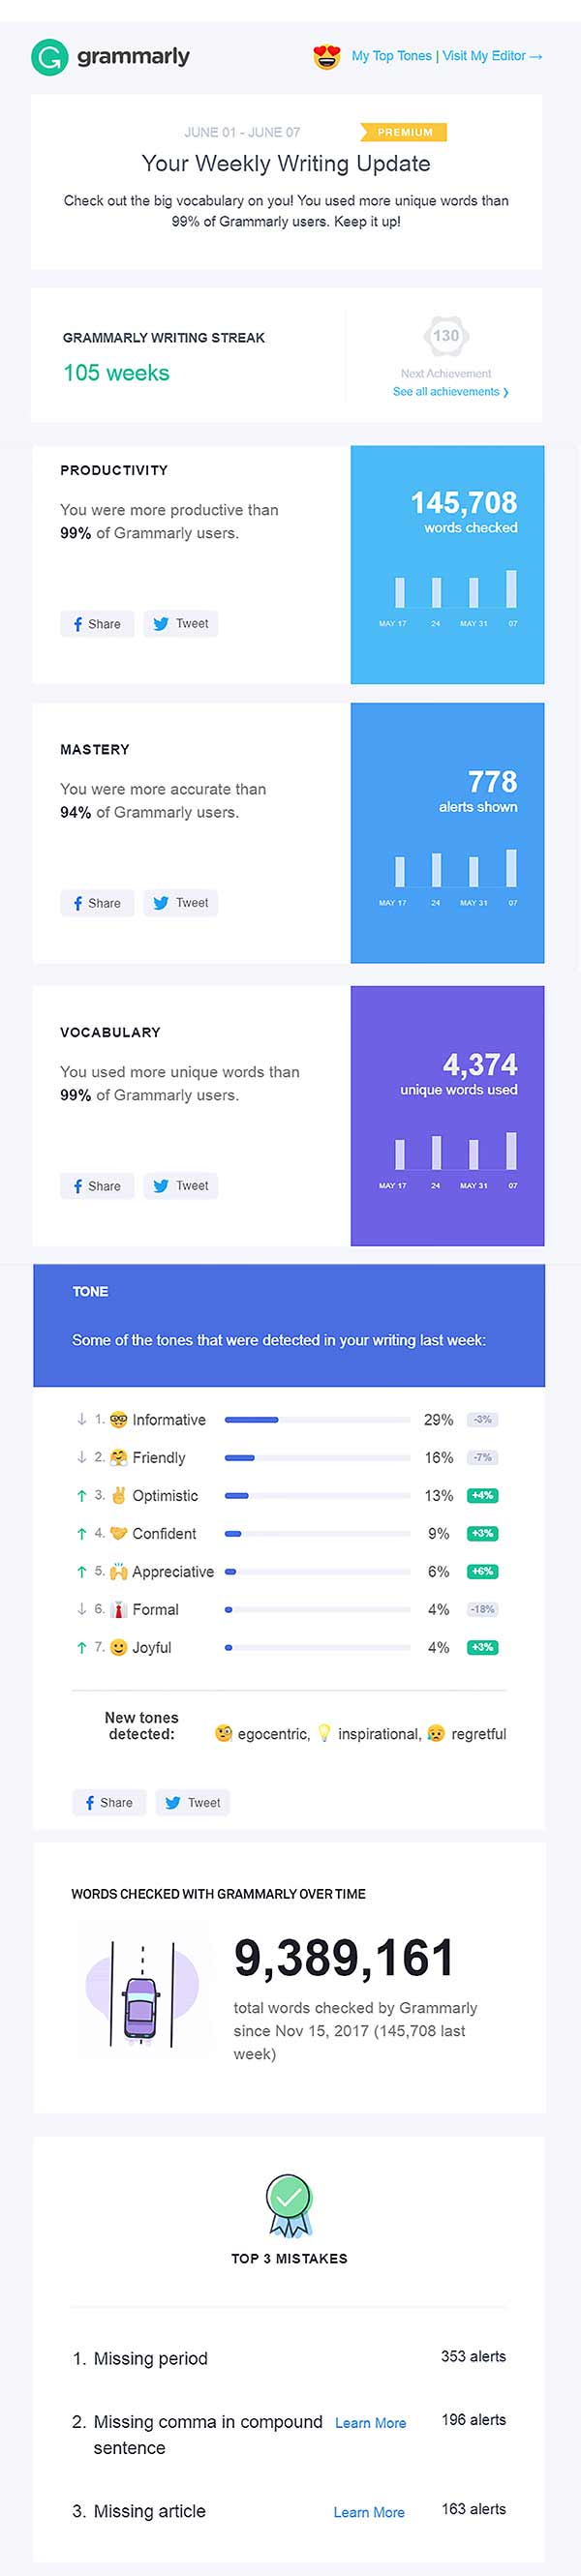 grammarly-insights-weekly-writing-report